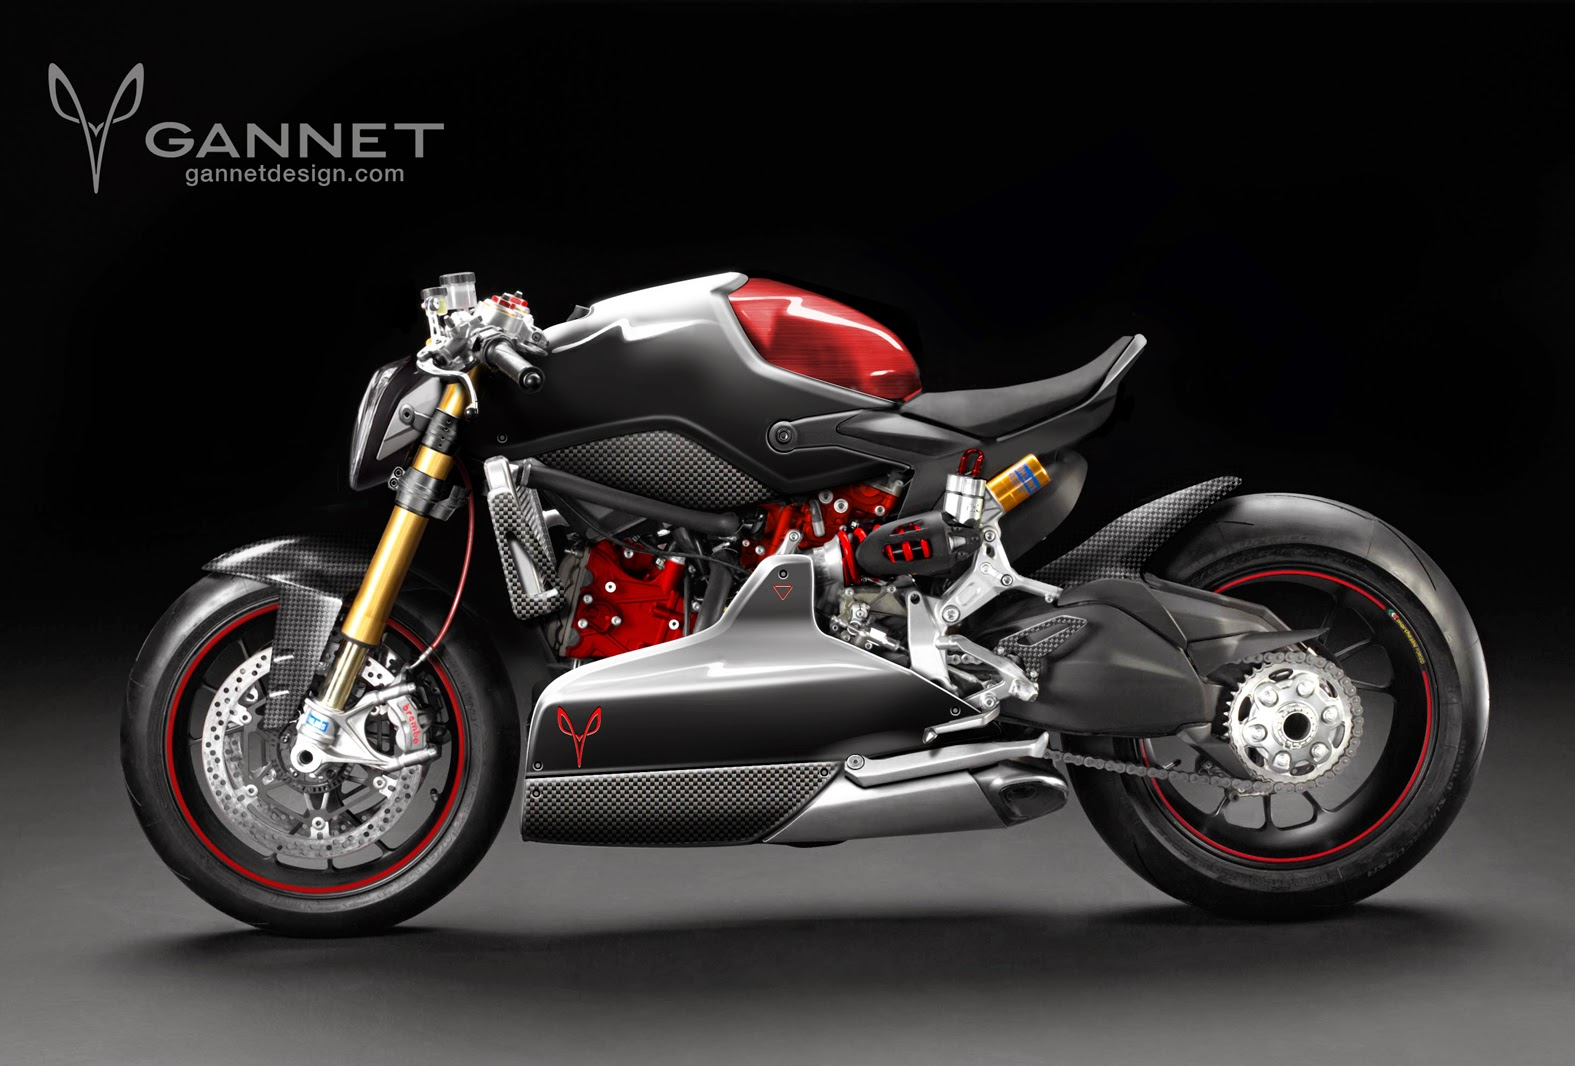 Racing Caf Design Corner Ducati 1199 Panigale Fighter By Custom Auto Wiring Accessories Gannet